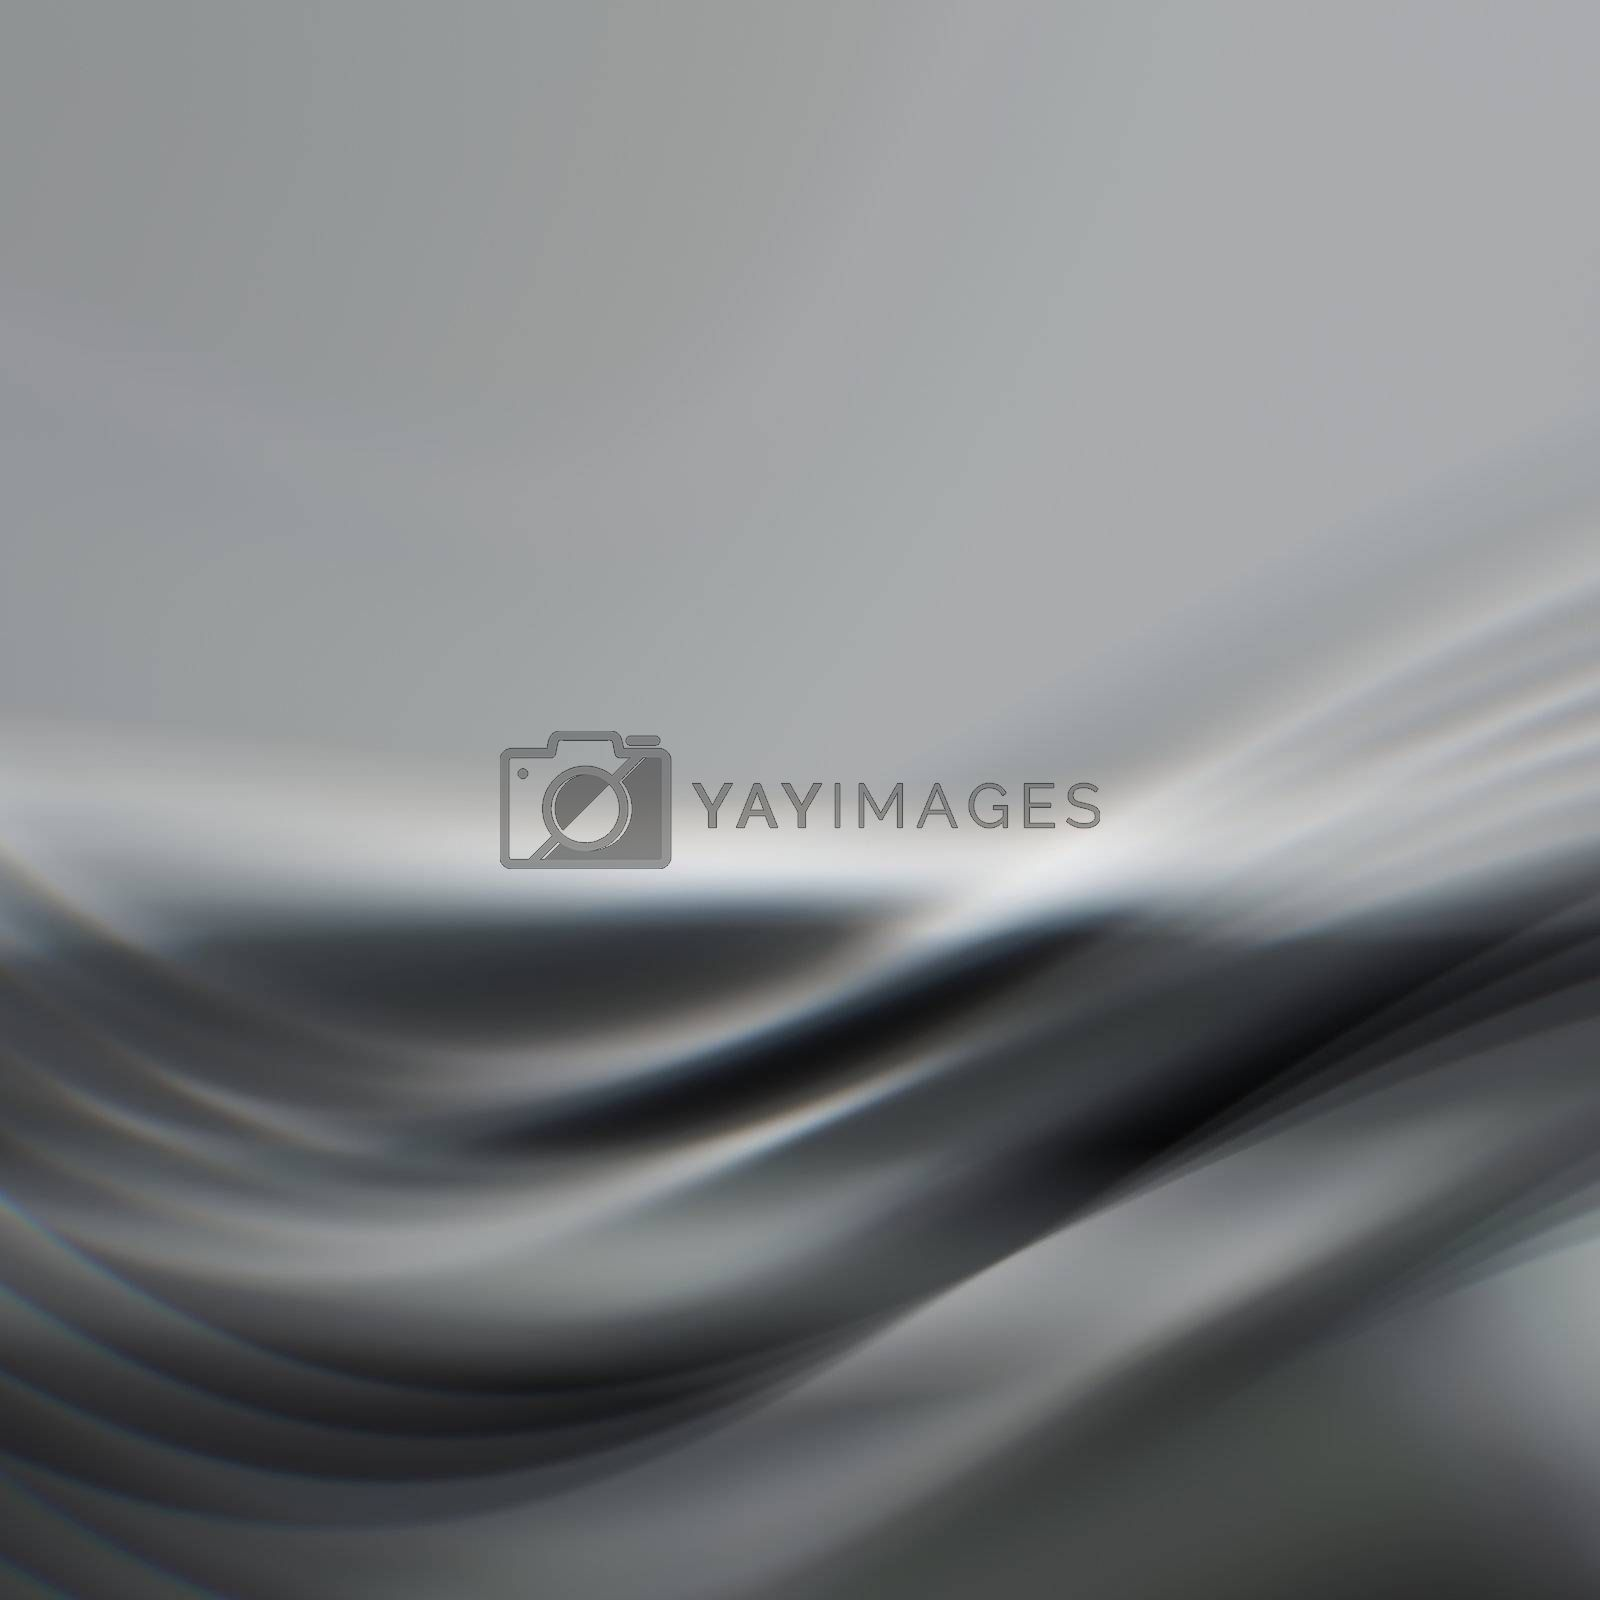 Royalty free image of wave by magann